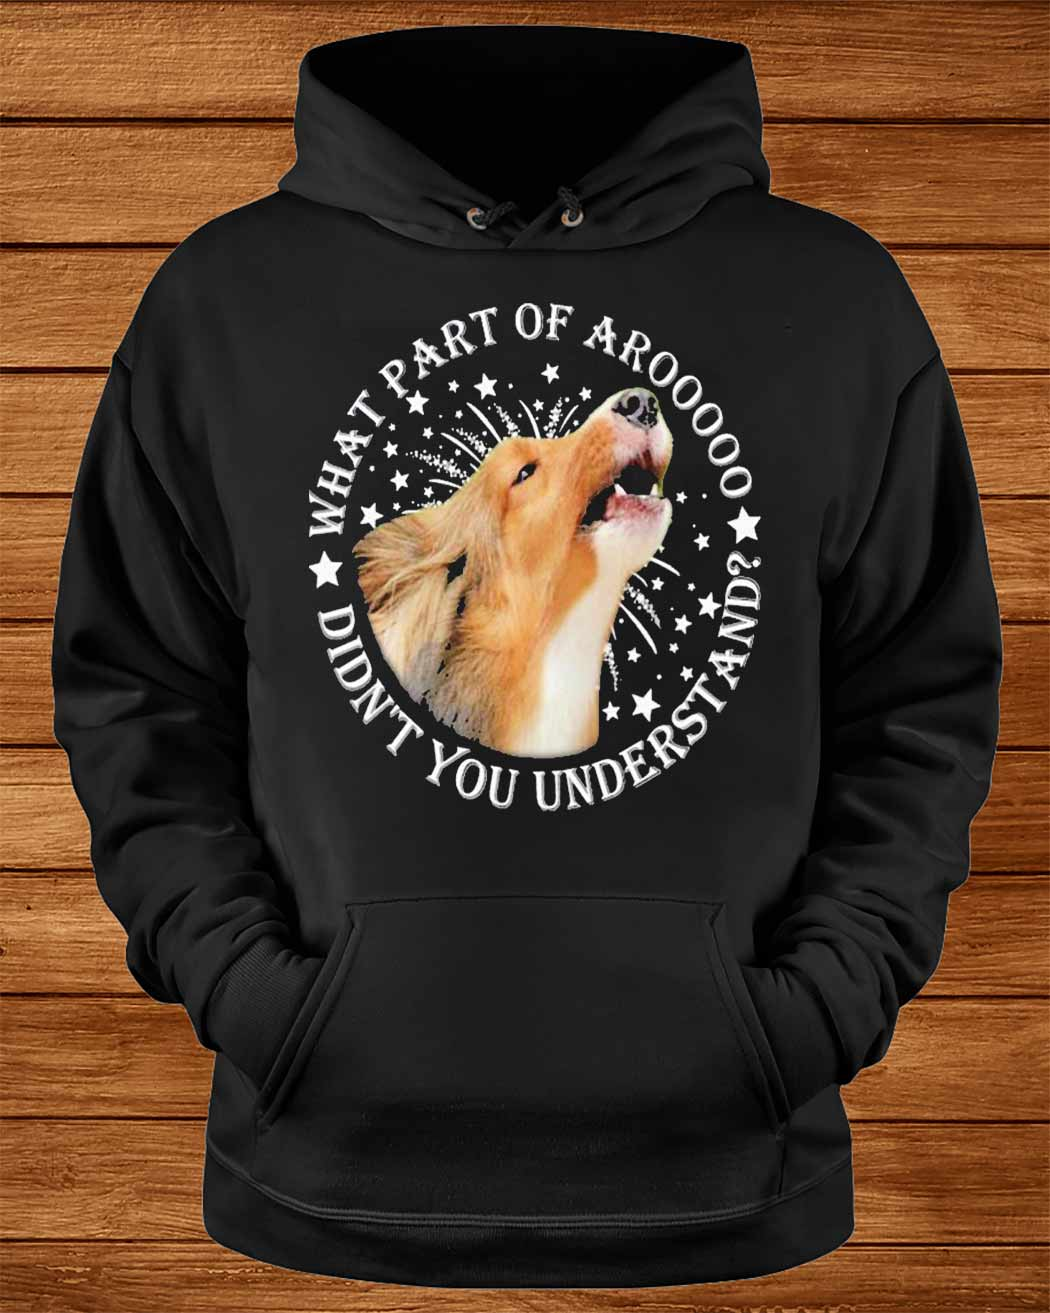 Sheltie S What Part Of Aroooo Didn Rsquo T You Understand Shirt